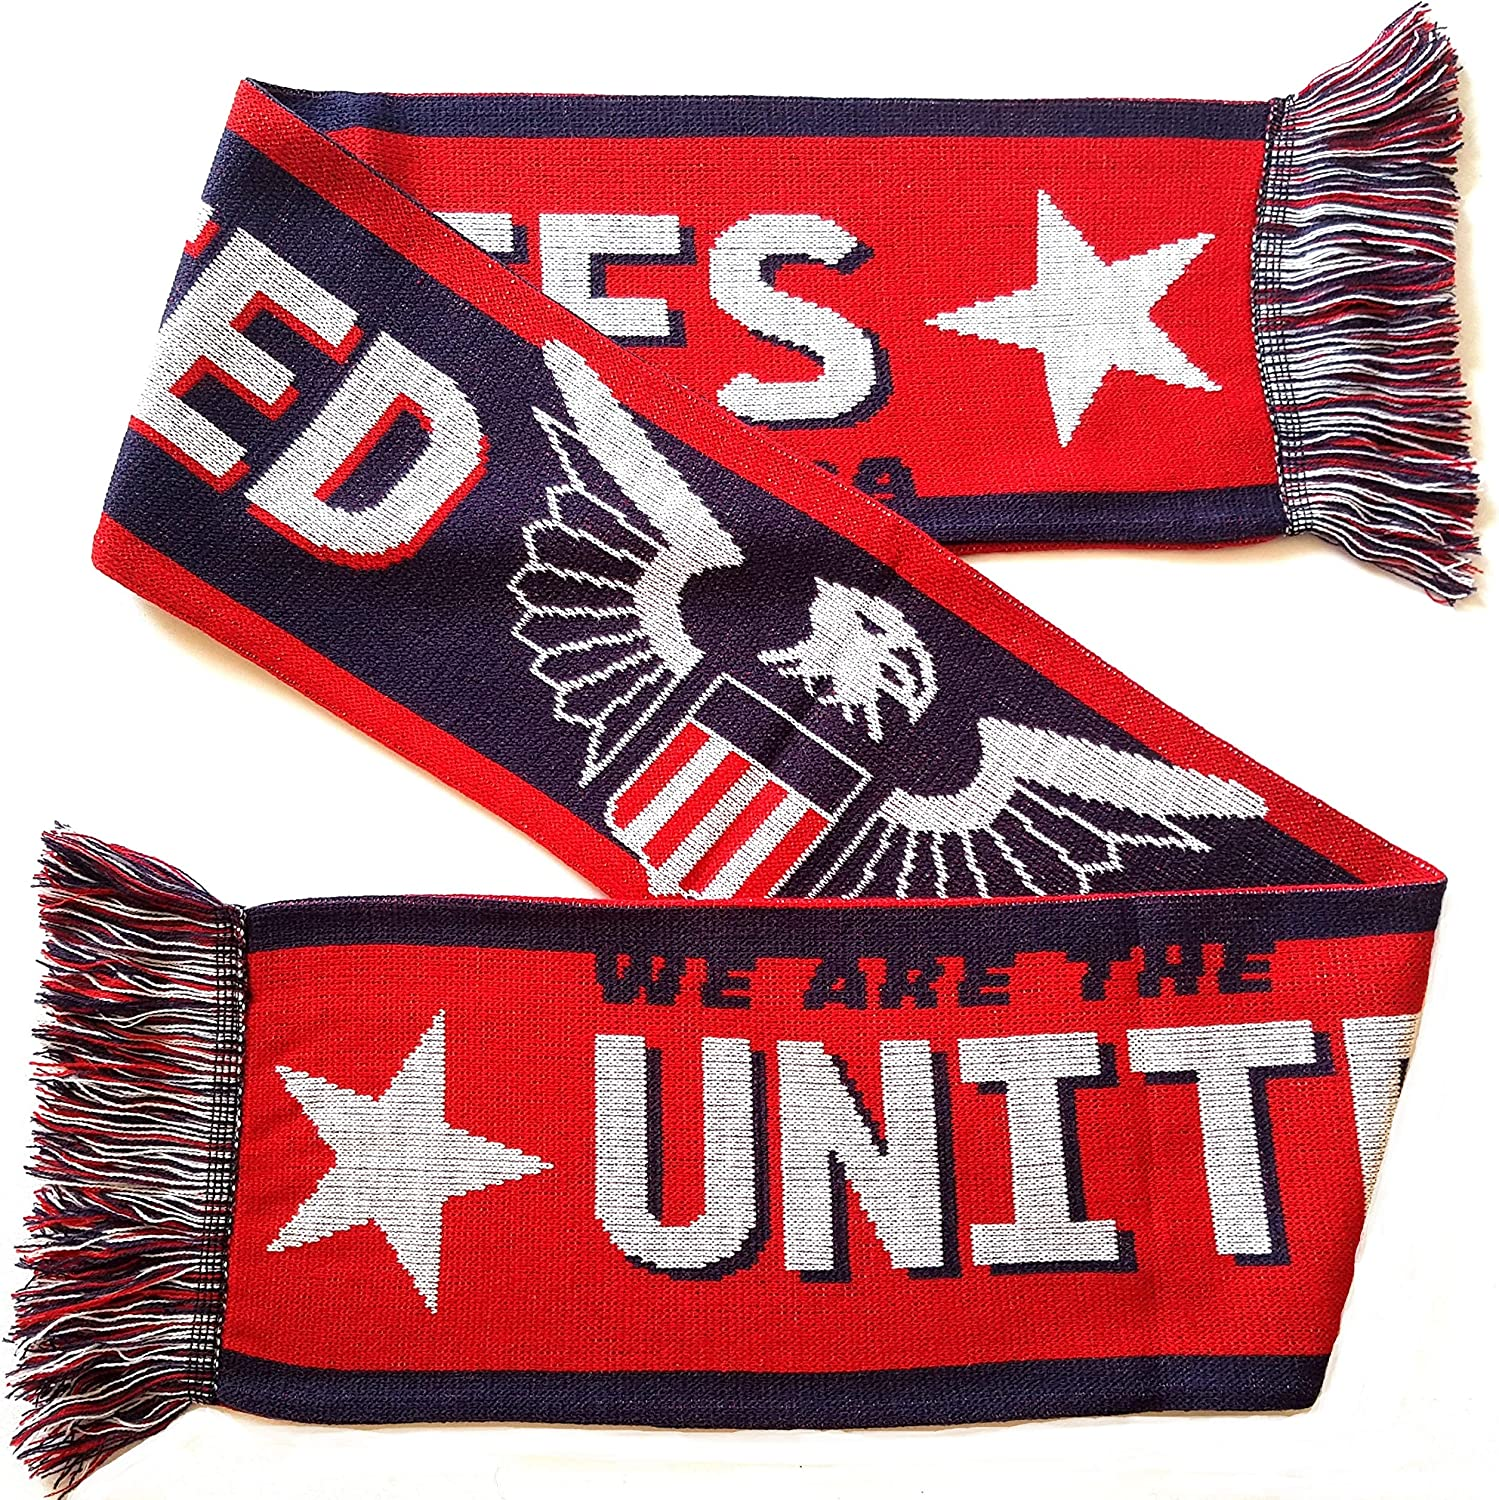 Cheap SALE Start USA Soccer Scarf Knit Free shipping anywhere in the nation